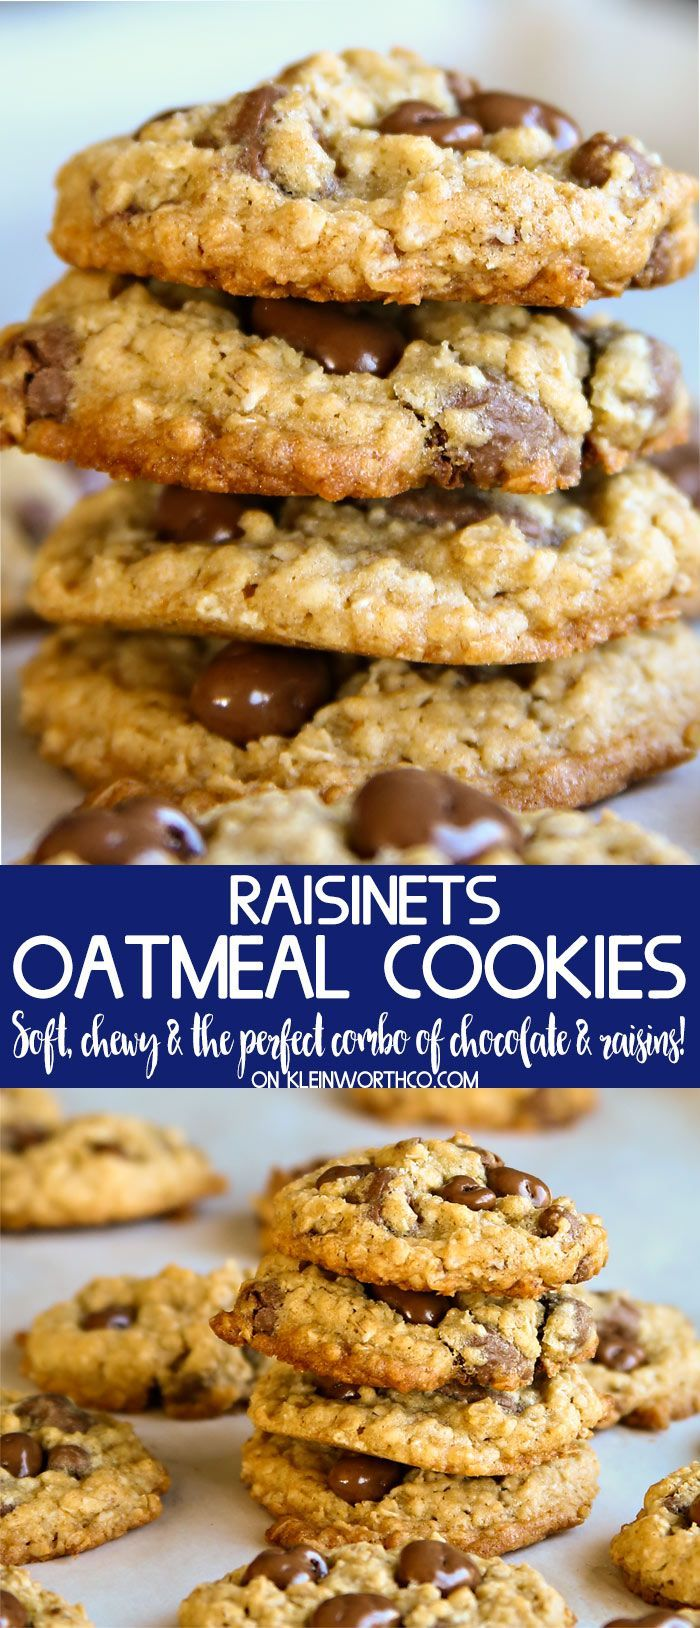 Chewy Raisinets Oatmeal Cookies are perfect when can't decide between adding raisins or chocolate chips to your favorite cookies. Easy no-chill recipe. via @KleinworthCo